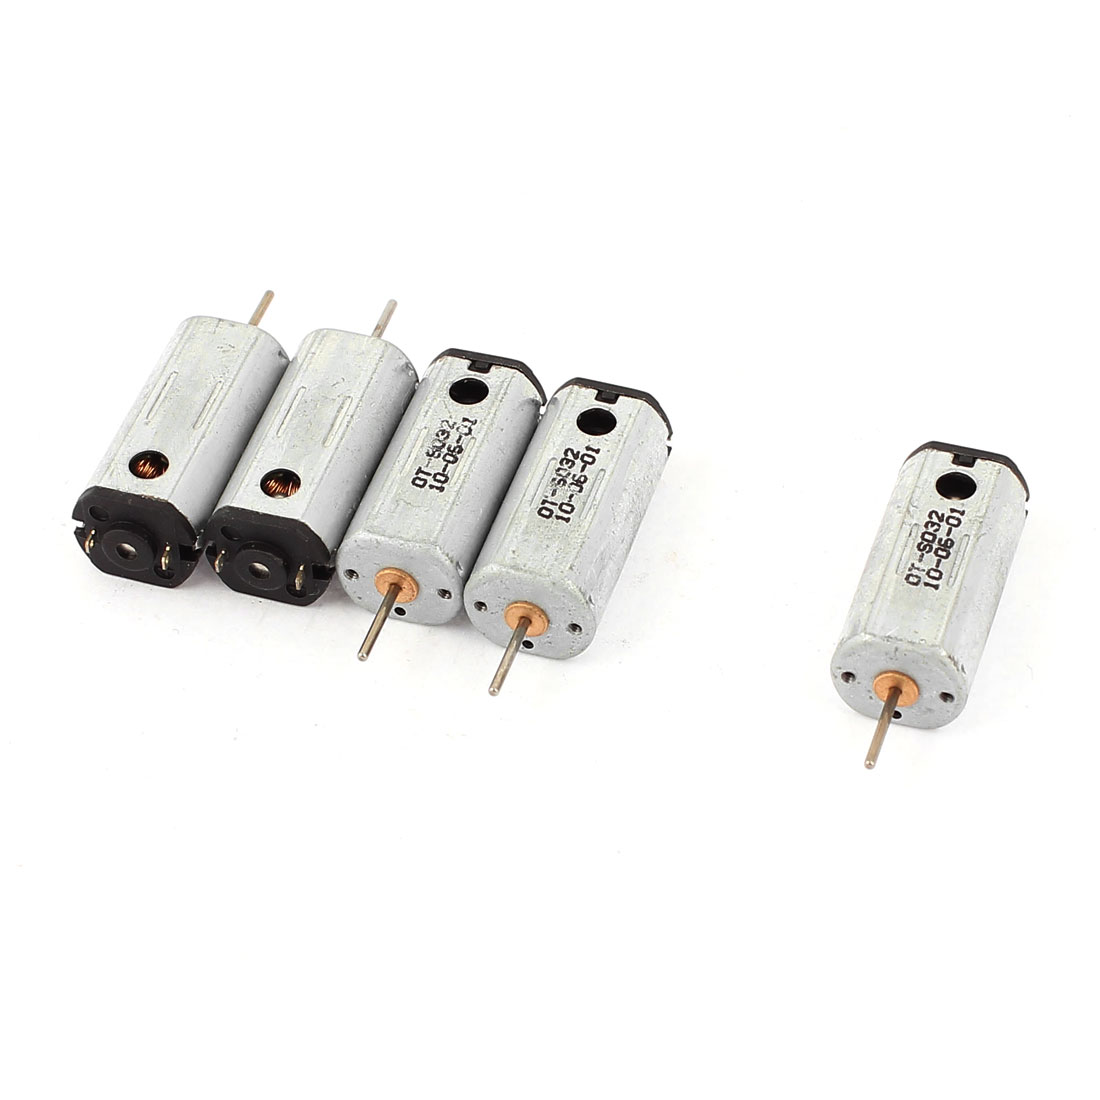 5Pcs DC 4.2V 36500RPM 1mm Dia Shaft High Speed Strong Magnetic Model Airplane DC Motor